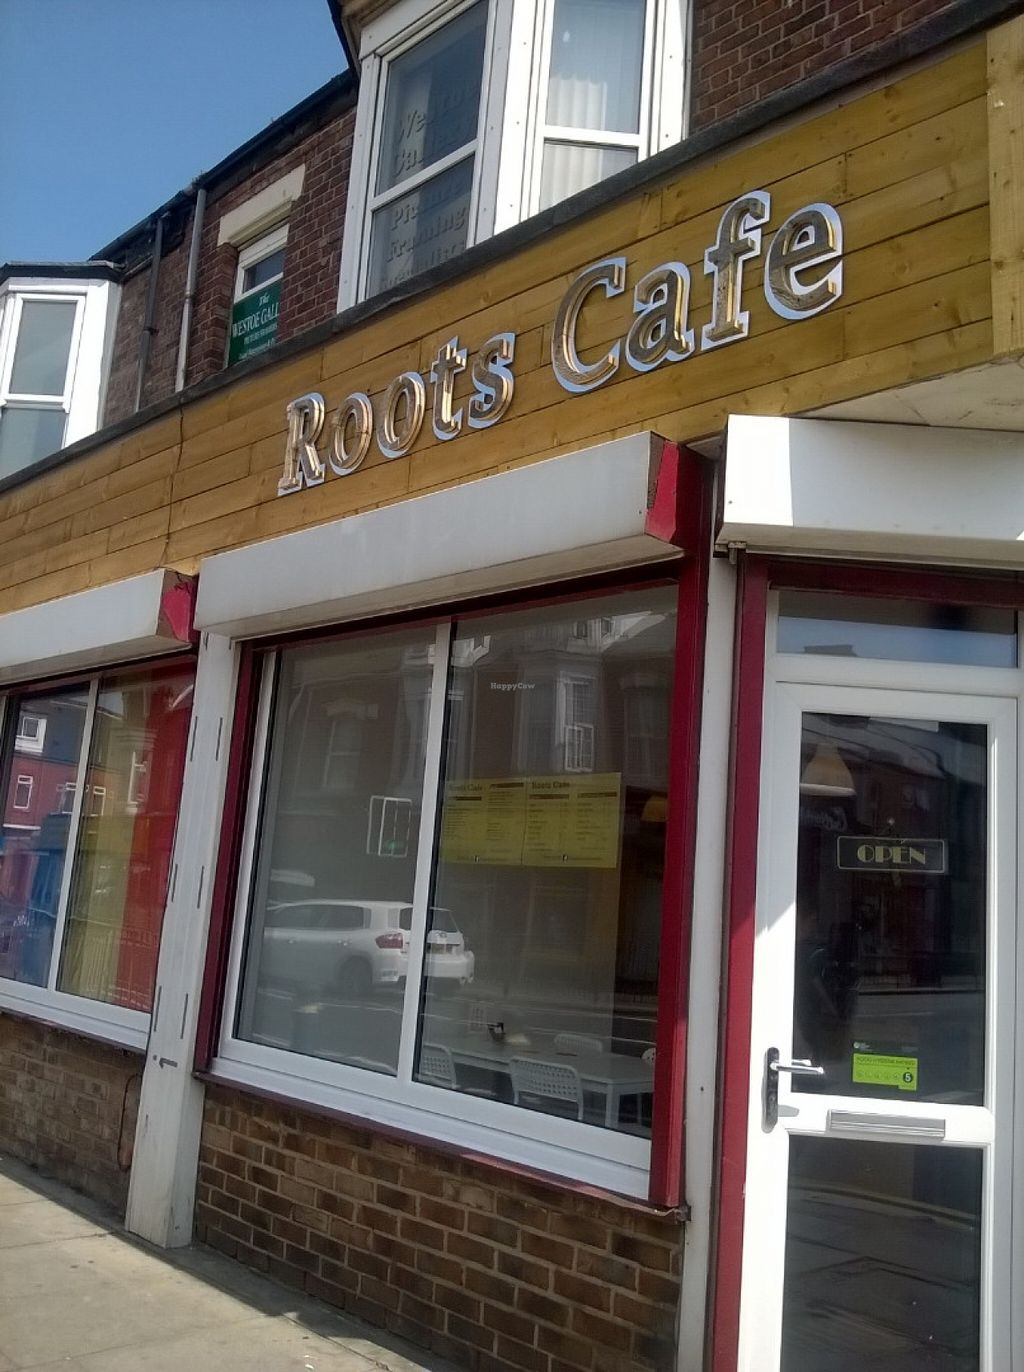 """Photo of CLOSED: Roots Cafe  by <a href=""""/members/profile/deadpledge"""">deadpledge</a> <br/>Roots Cafe <br/> June 7, 2016  - <a href='/contact/abuse/image/72911/152751'>Report</a>"""